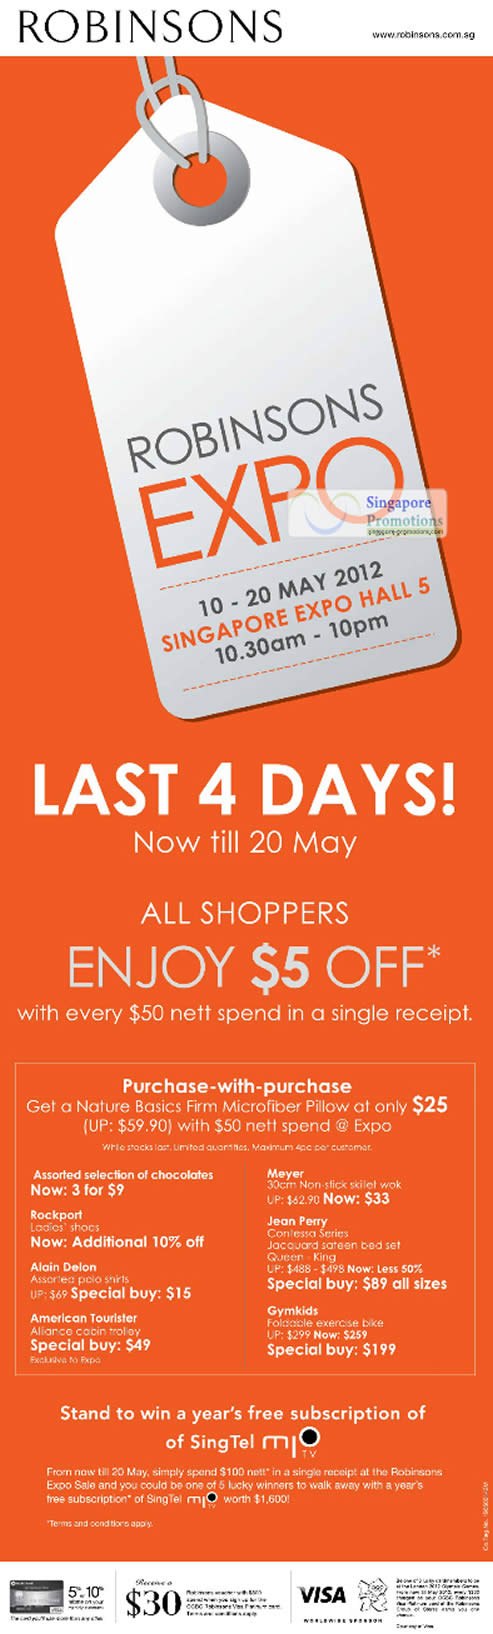 17 May Five Dollars Off With Every 50 Spend